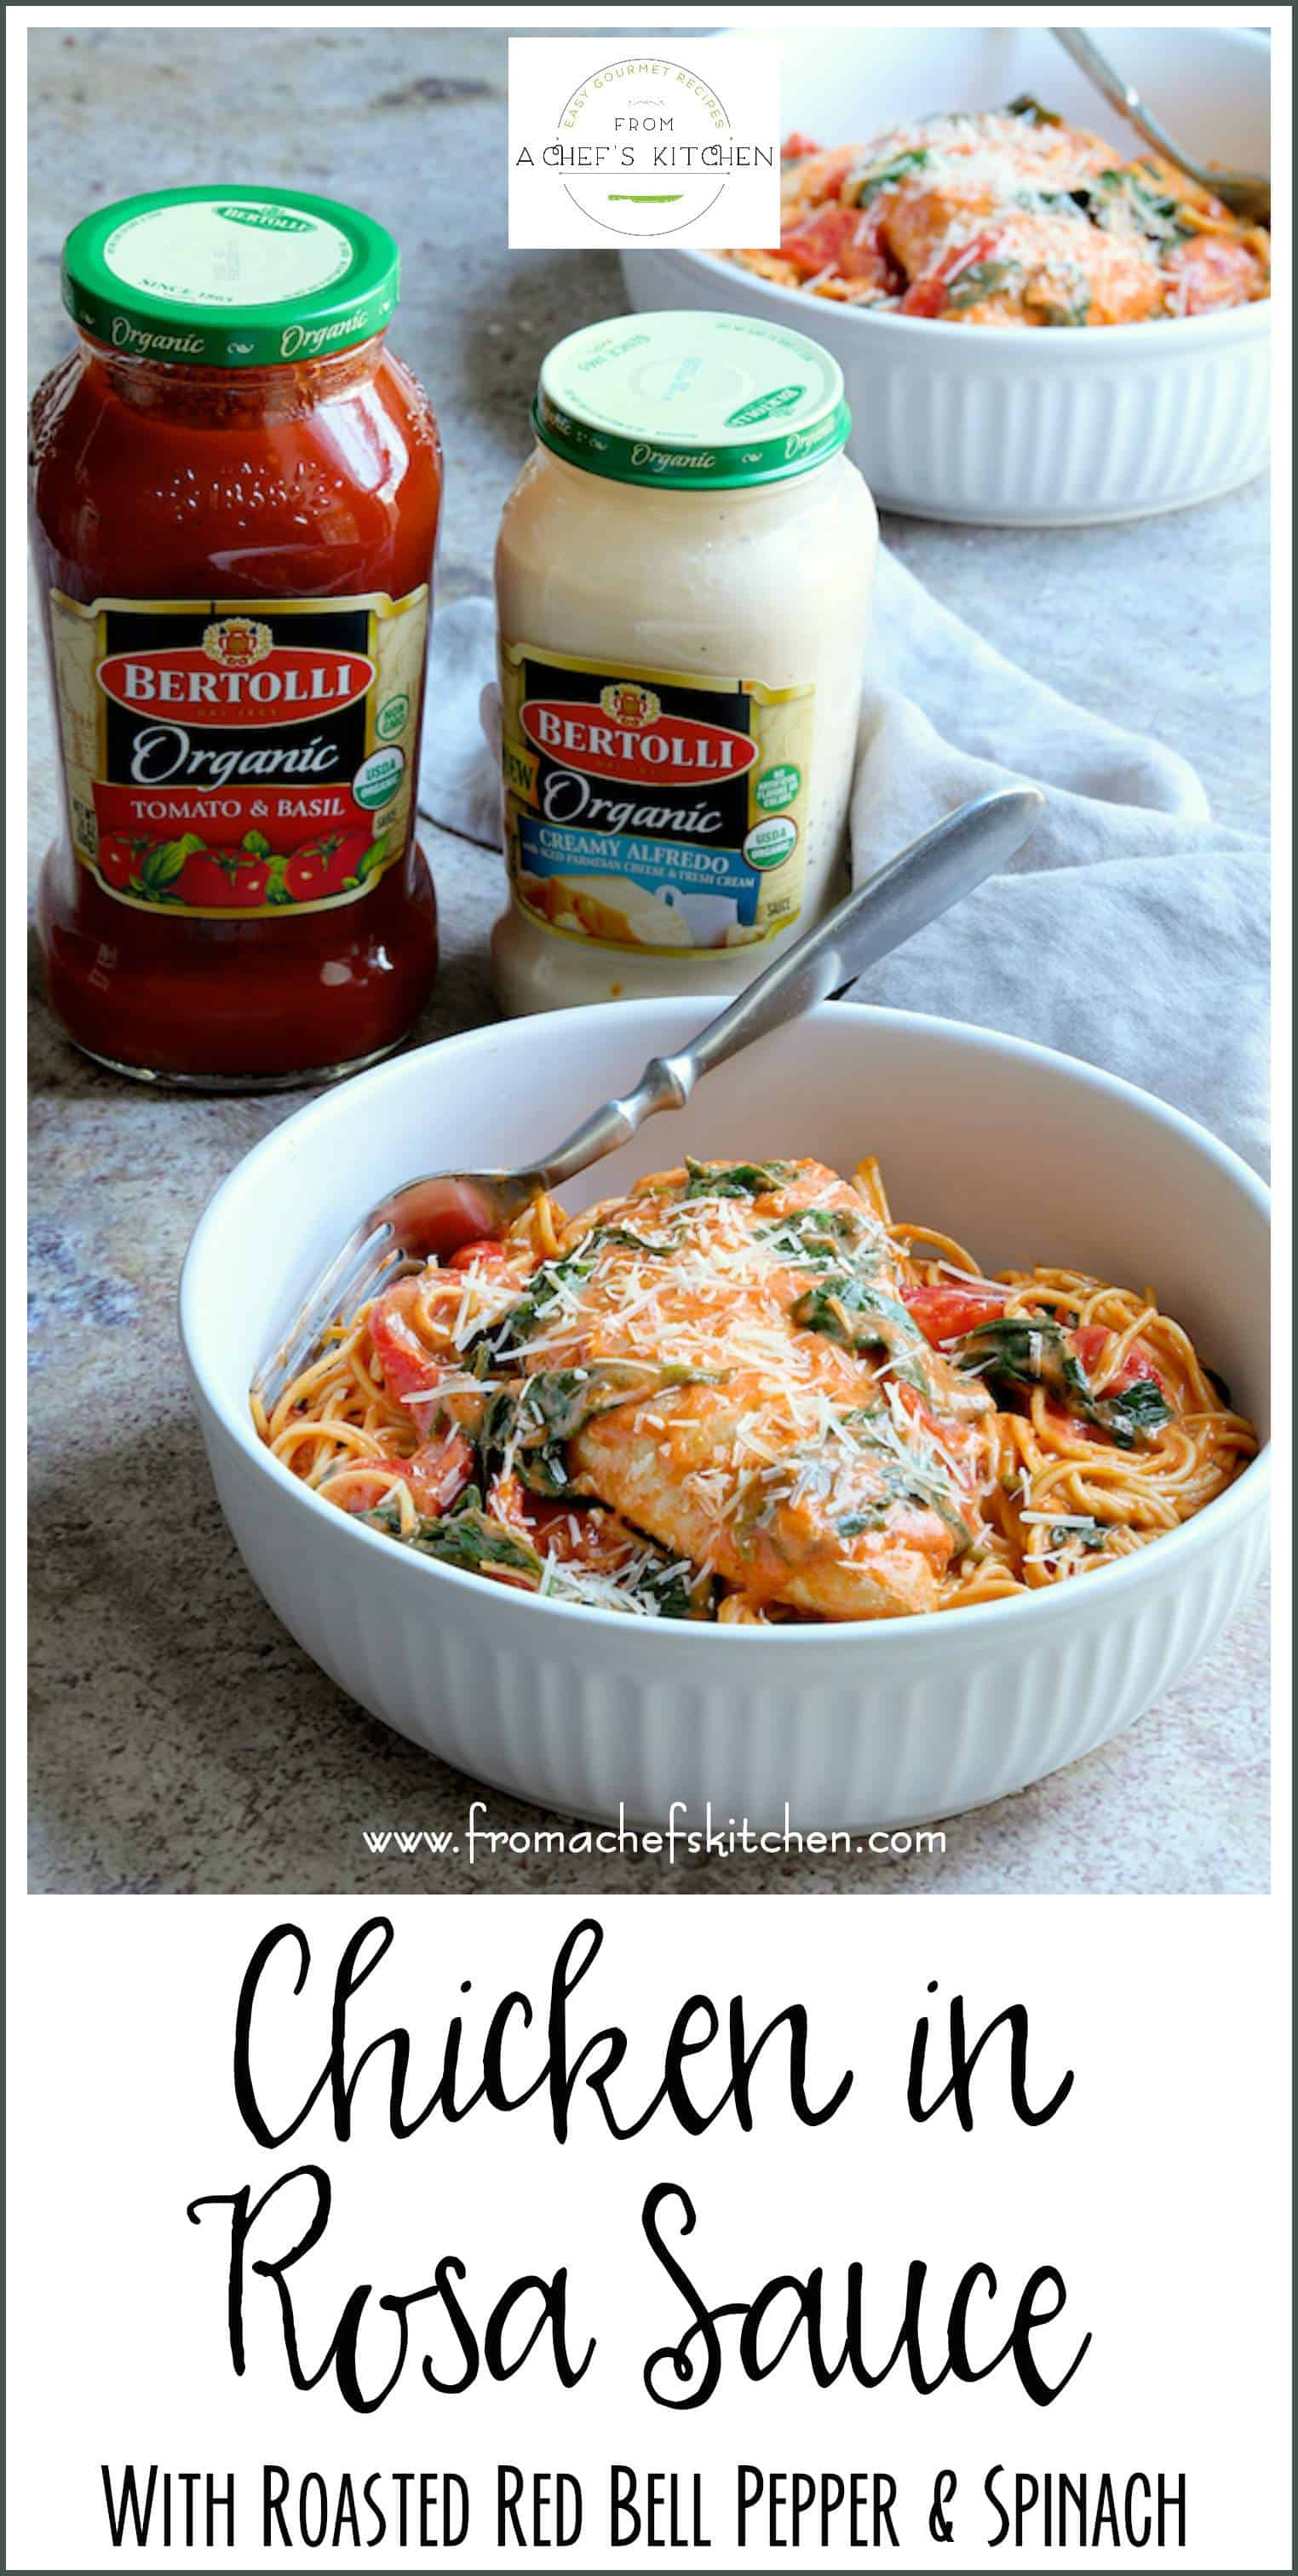 #sponsored #ad - Chicken in Rosa Sauce with Roasted Red Bell Pepper and Spinach is perfect for your romantic Valentine's Day dinner at home! This simply delicious Tuscan-inspired meal will have you asking for amoré!#BertolliVDayIn #chicken #pasta @Bertolli